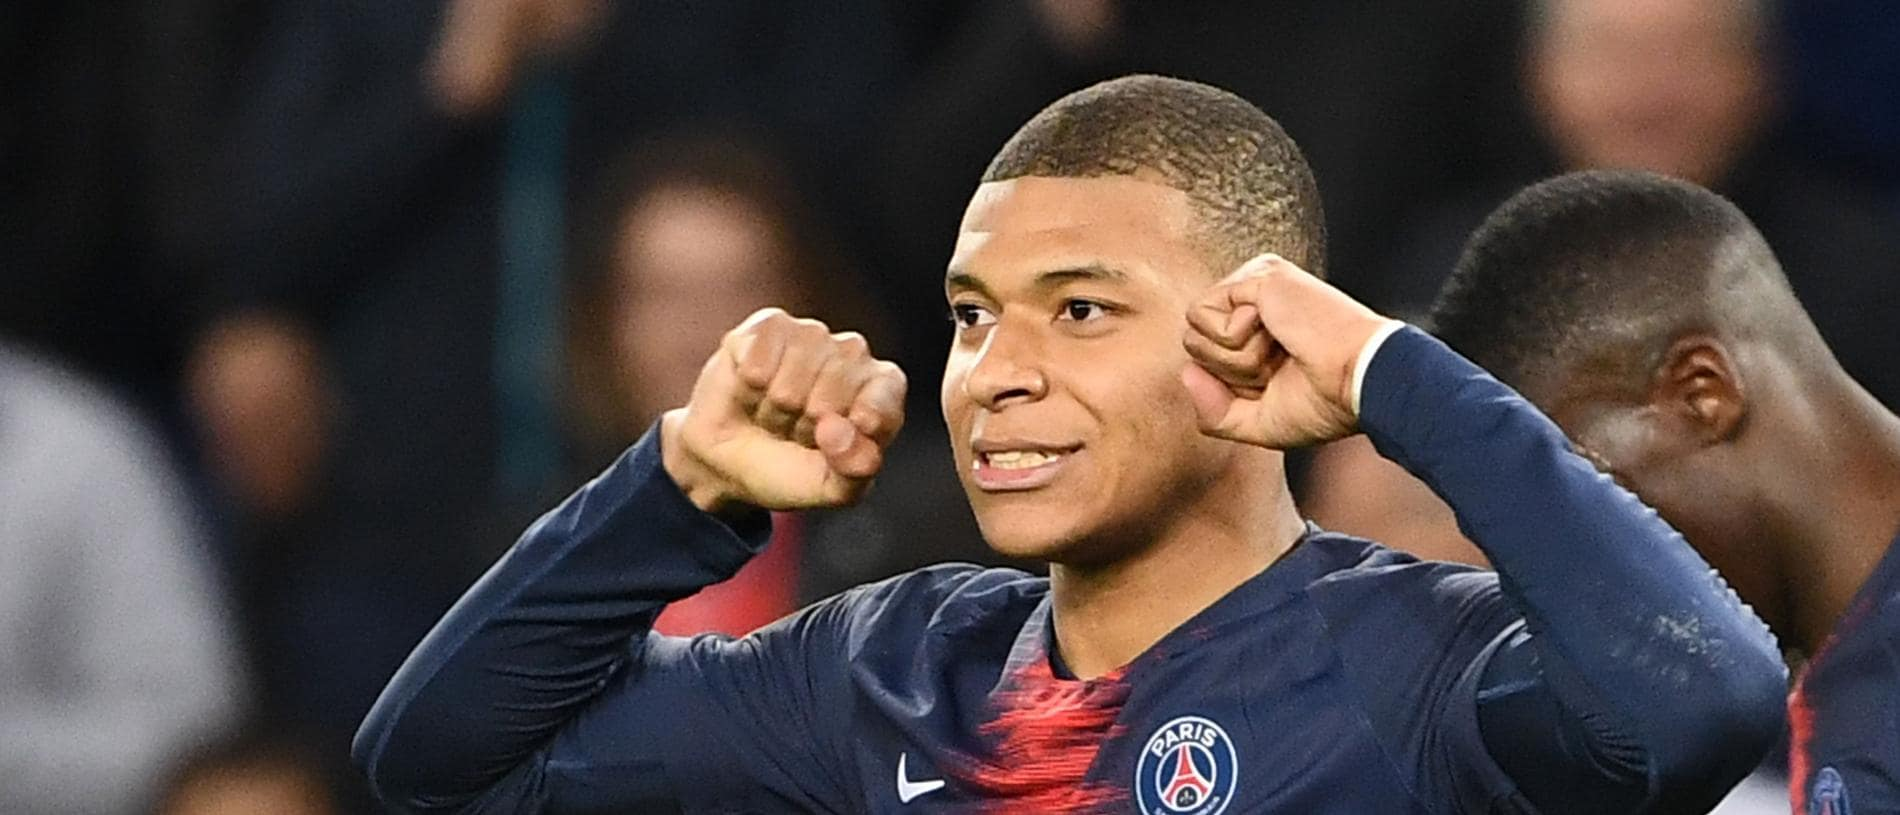 Paris Saint-Germain's French forward Kylian Mbappe celebrates scoring his team's third goal during the French L1 football match between Paris Saint-Germain and Nimes at the Parc de Princes in Paris on 23 February 2019. (Photo by FRANCK FIFE / AFP)